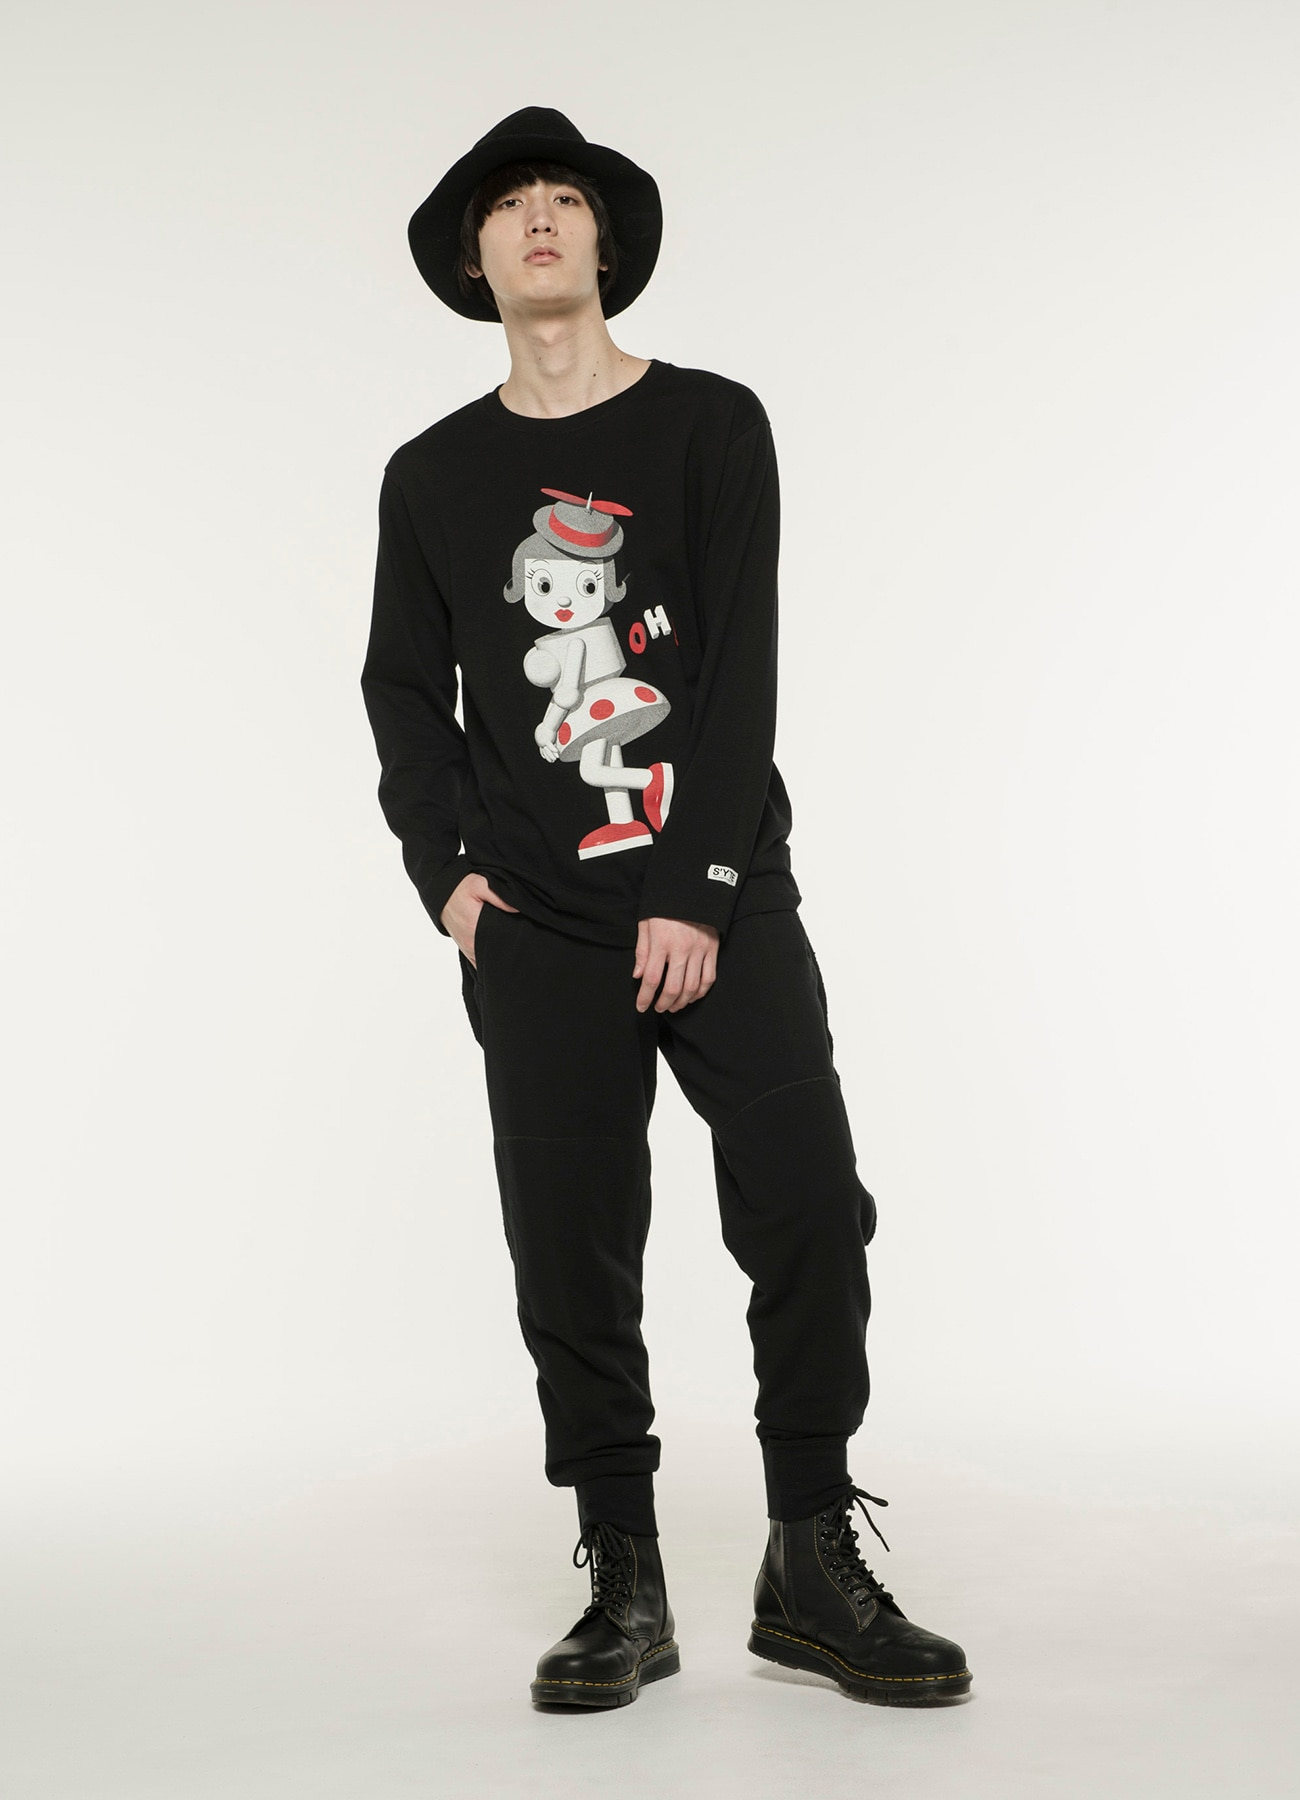 20/CottonJersey Oh!Puppy Long Sleeve T-Shirt